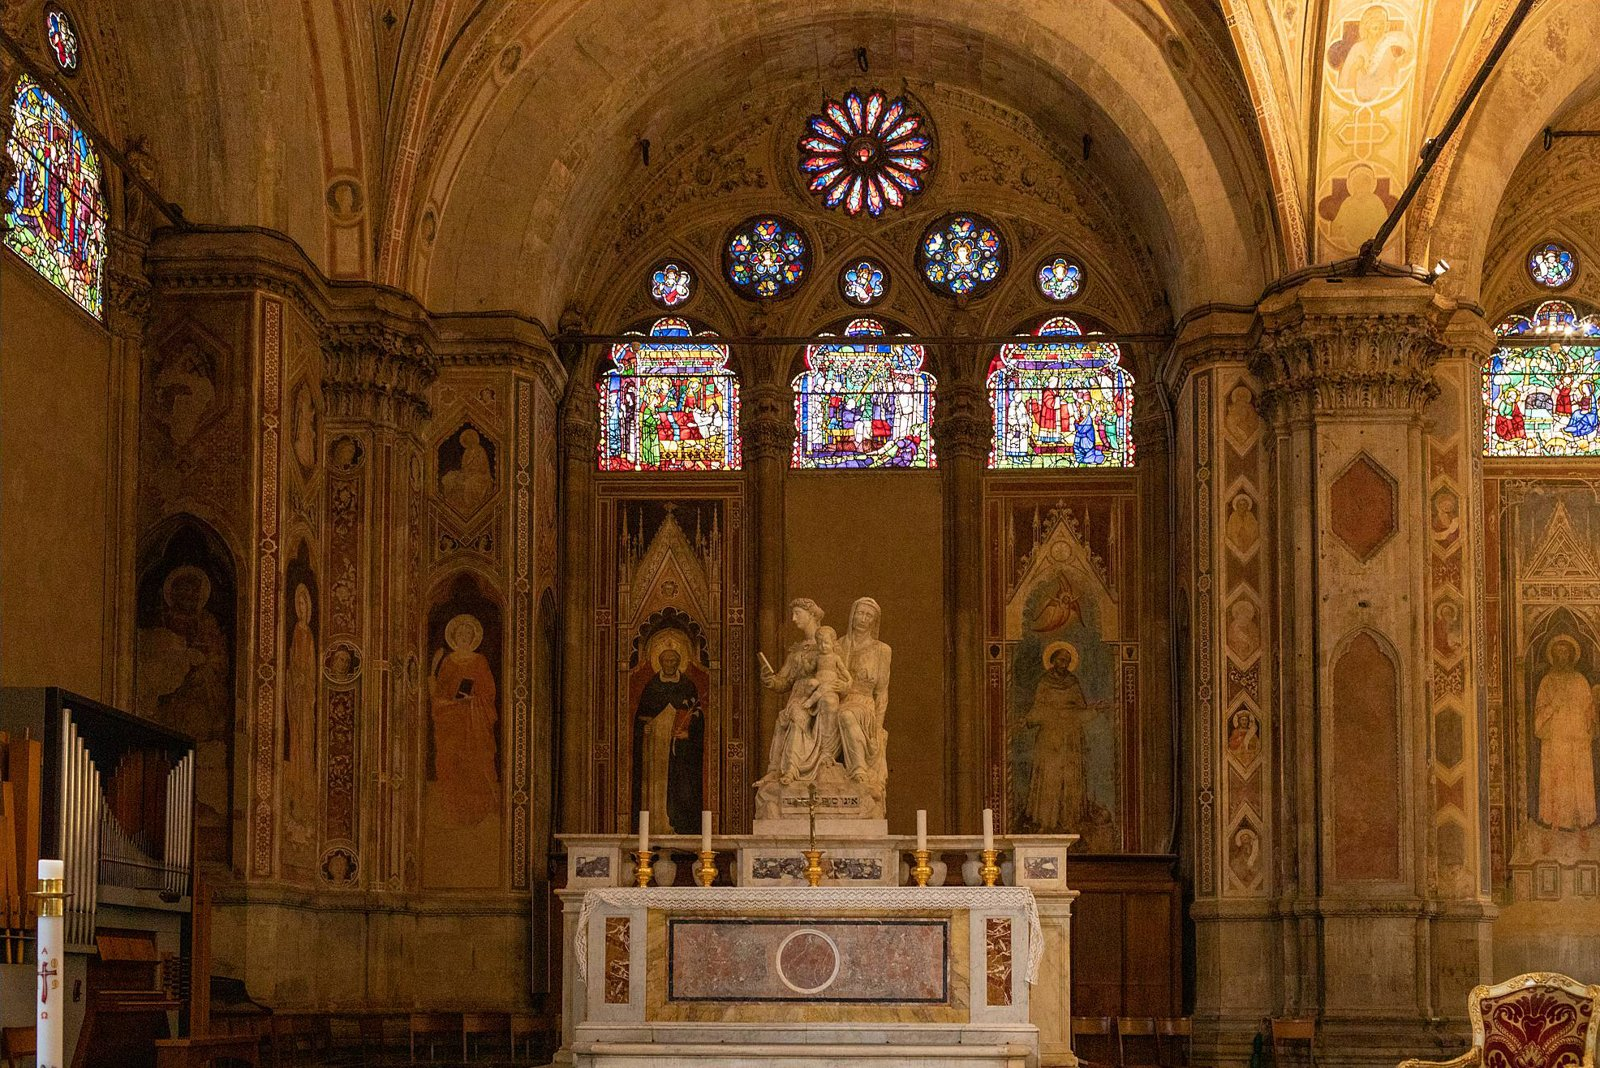 Stained glass and altar in Orsanmichele church